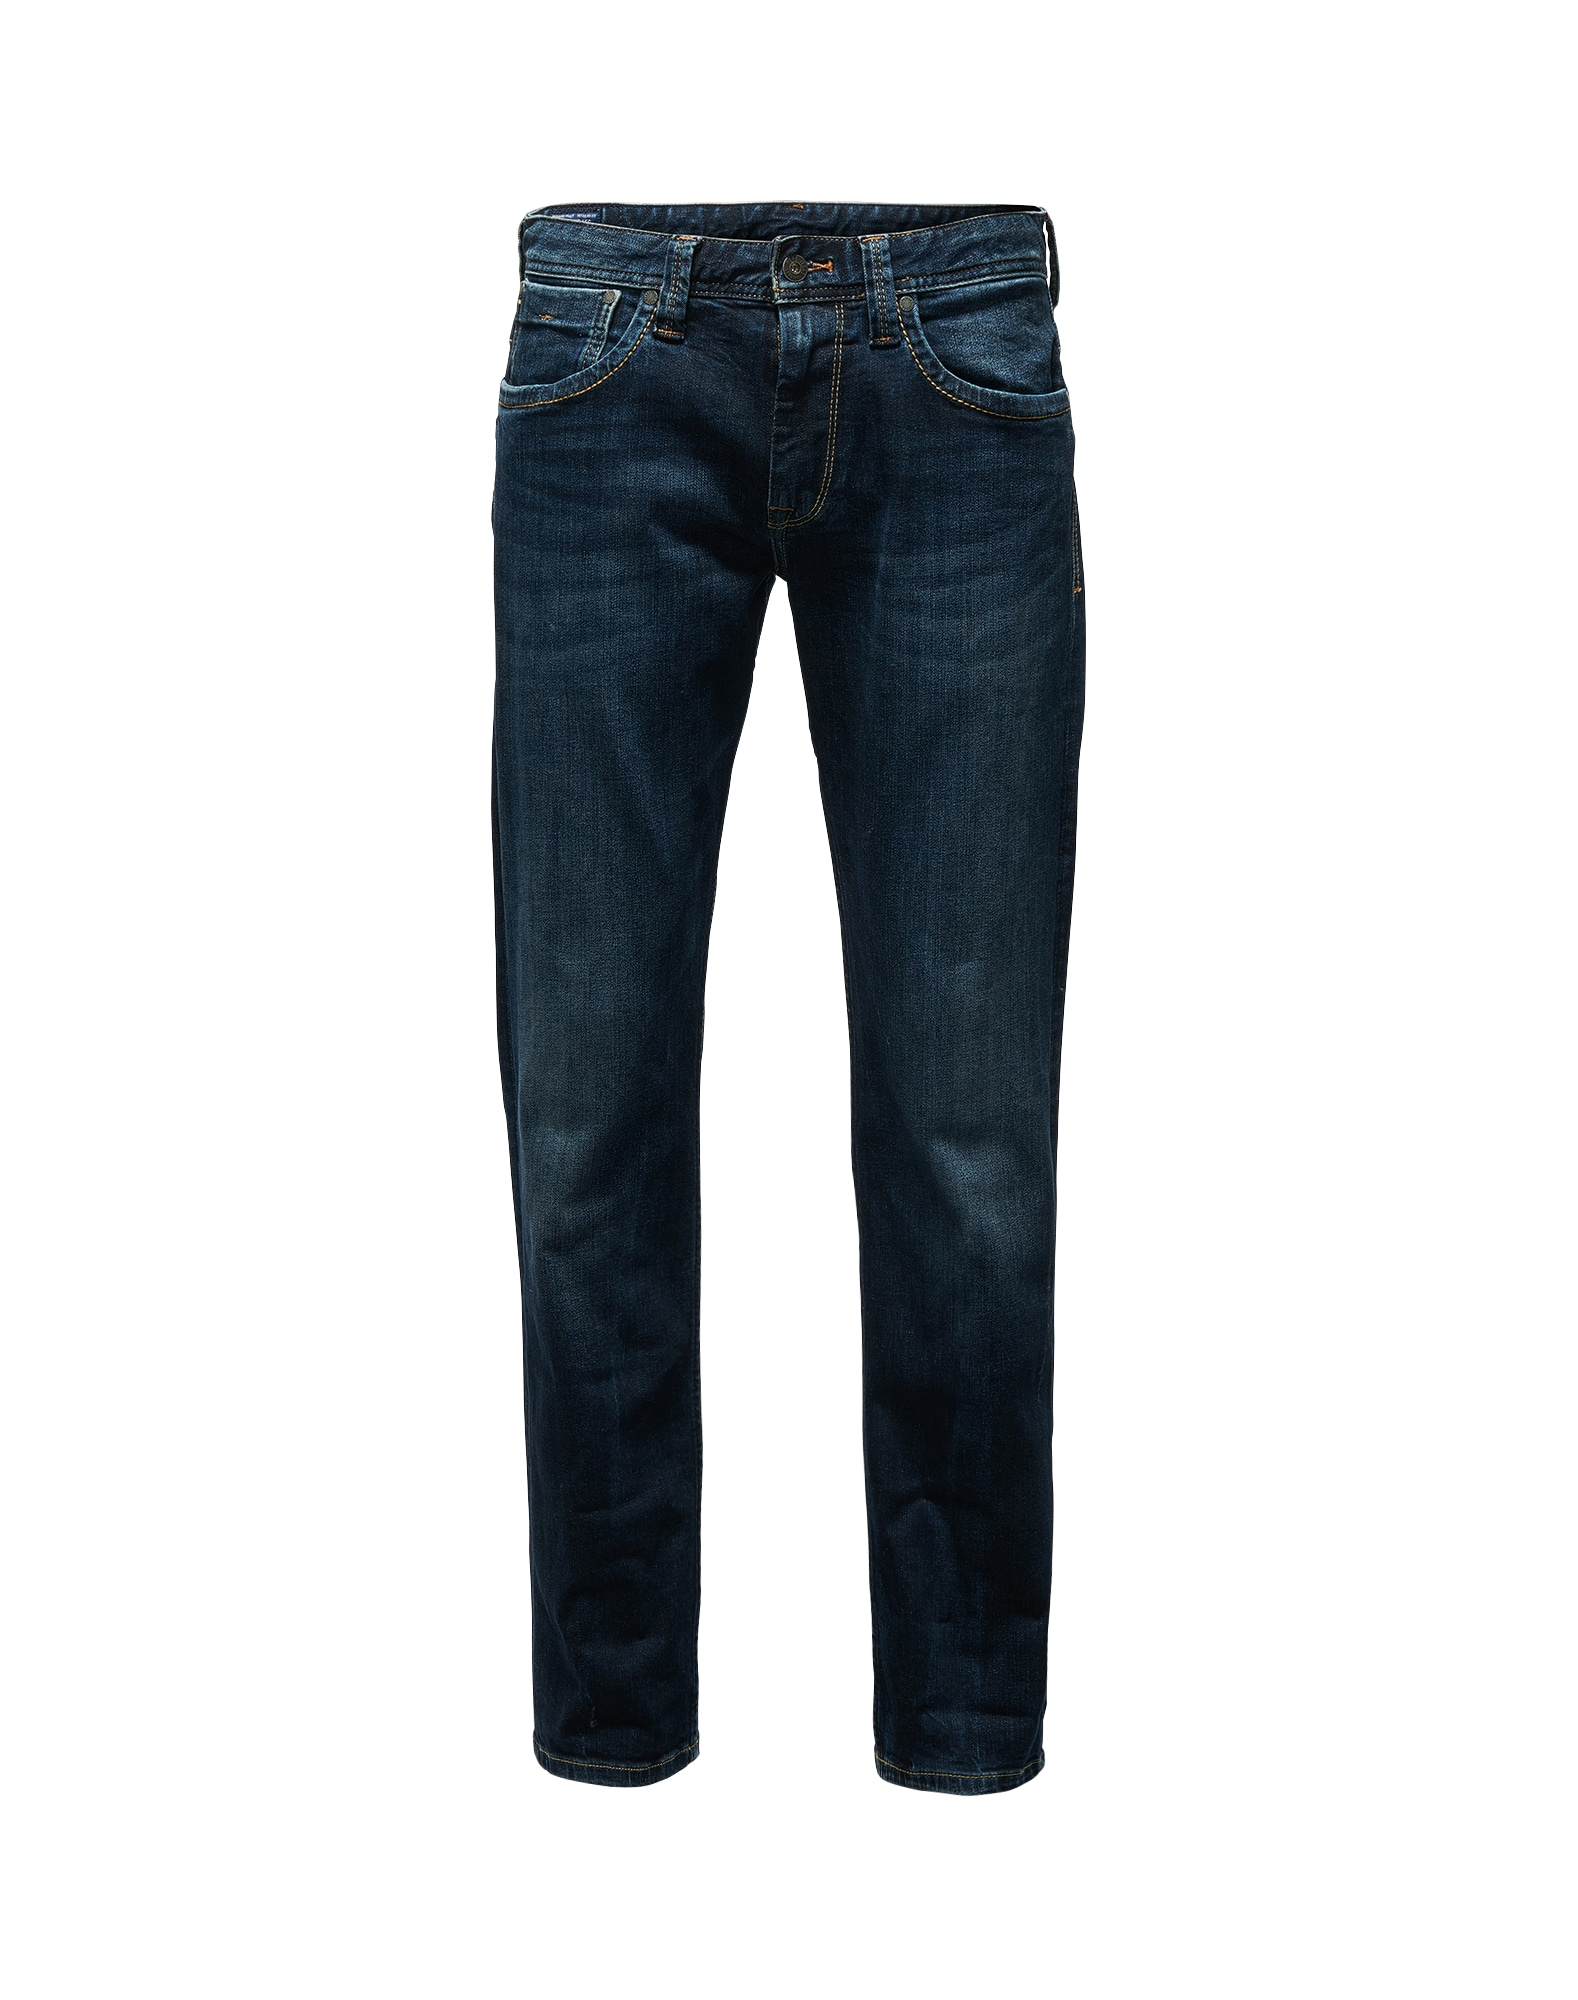 Pepe Jeans Heren Jeans donkerblauw